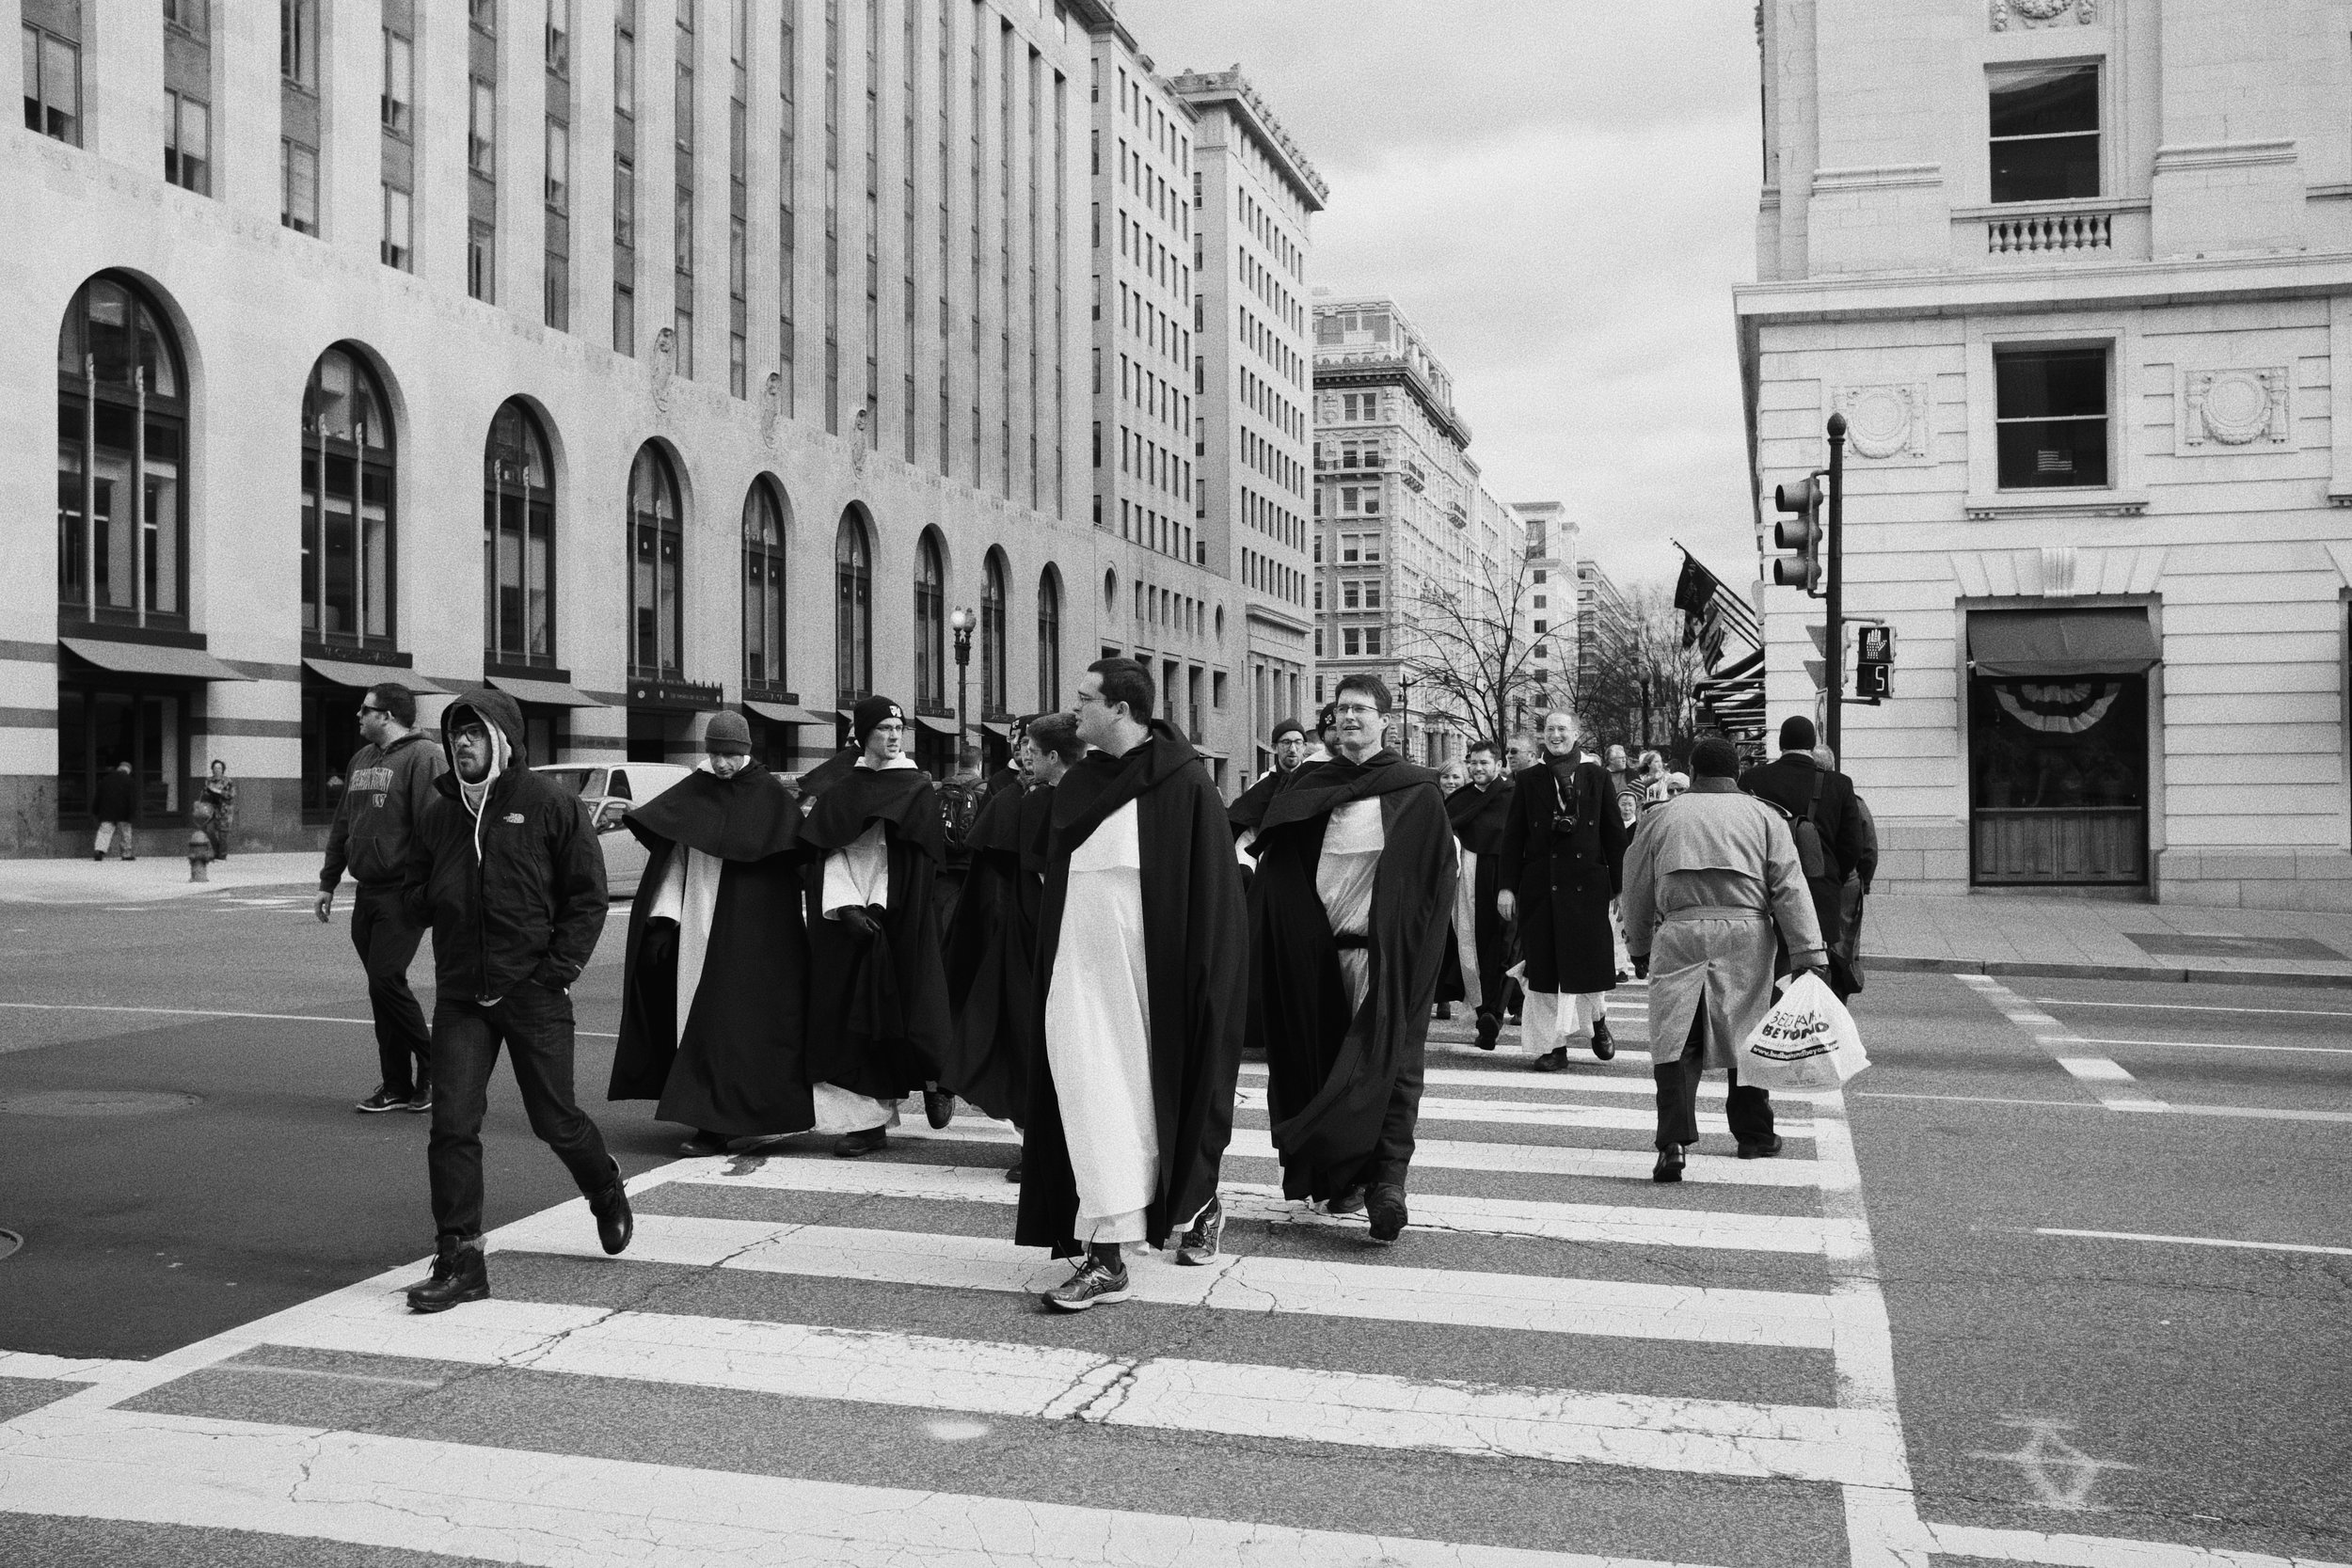 A group of friars crosses the street on the way to the march.